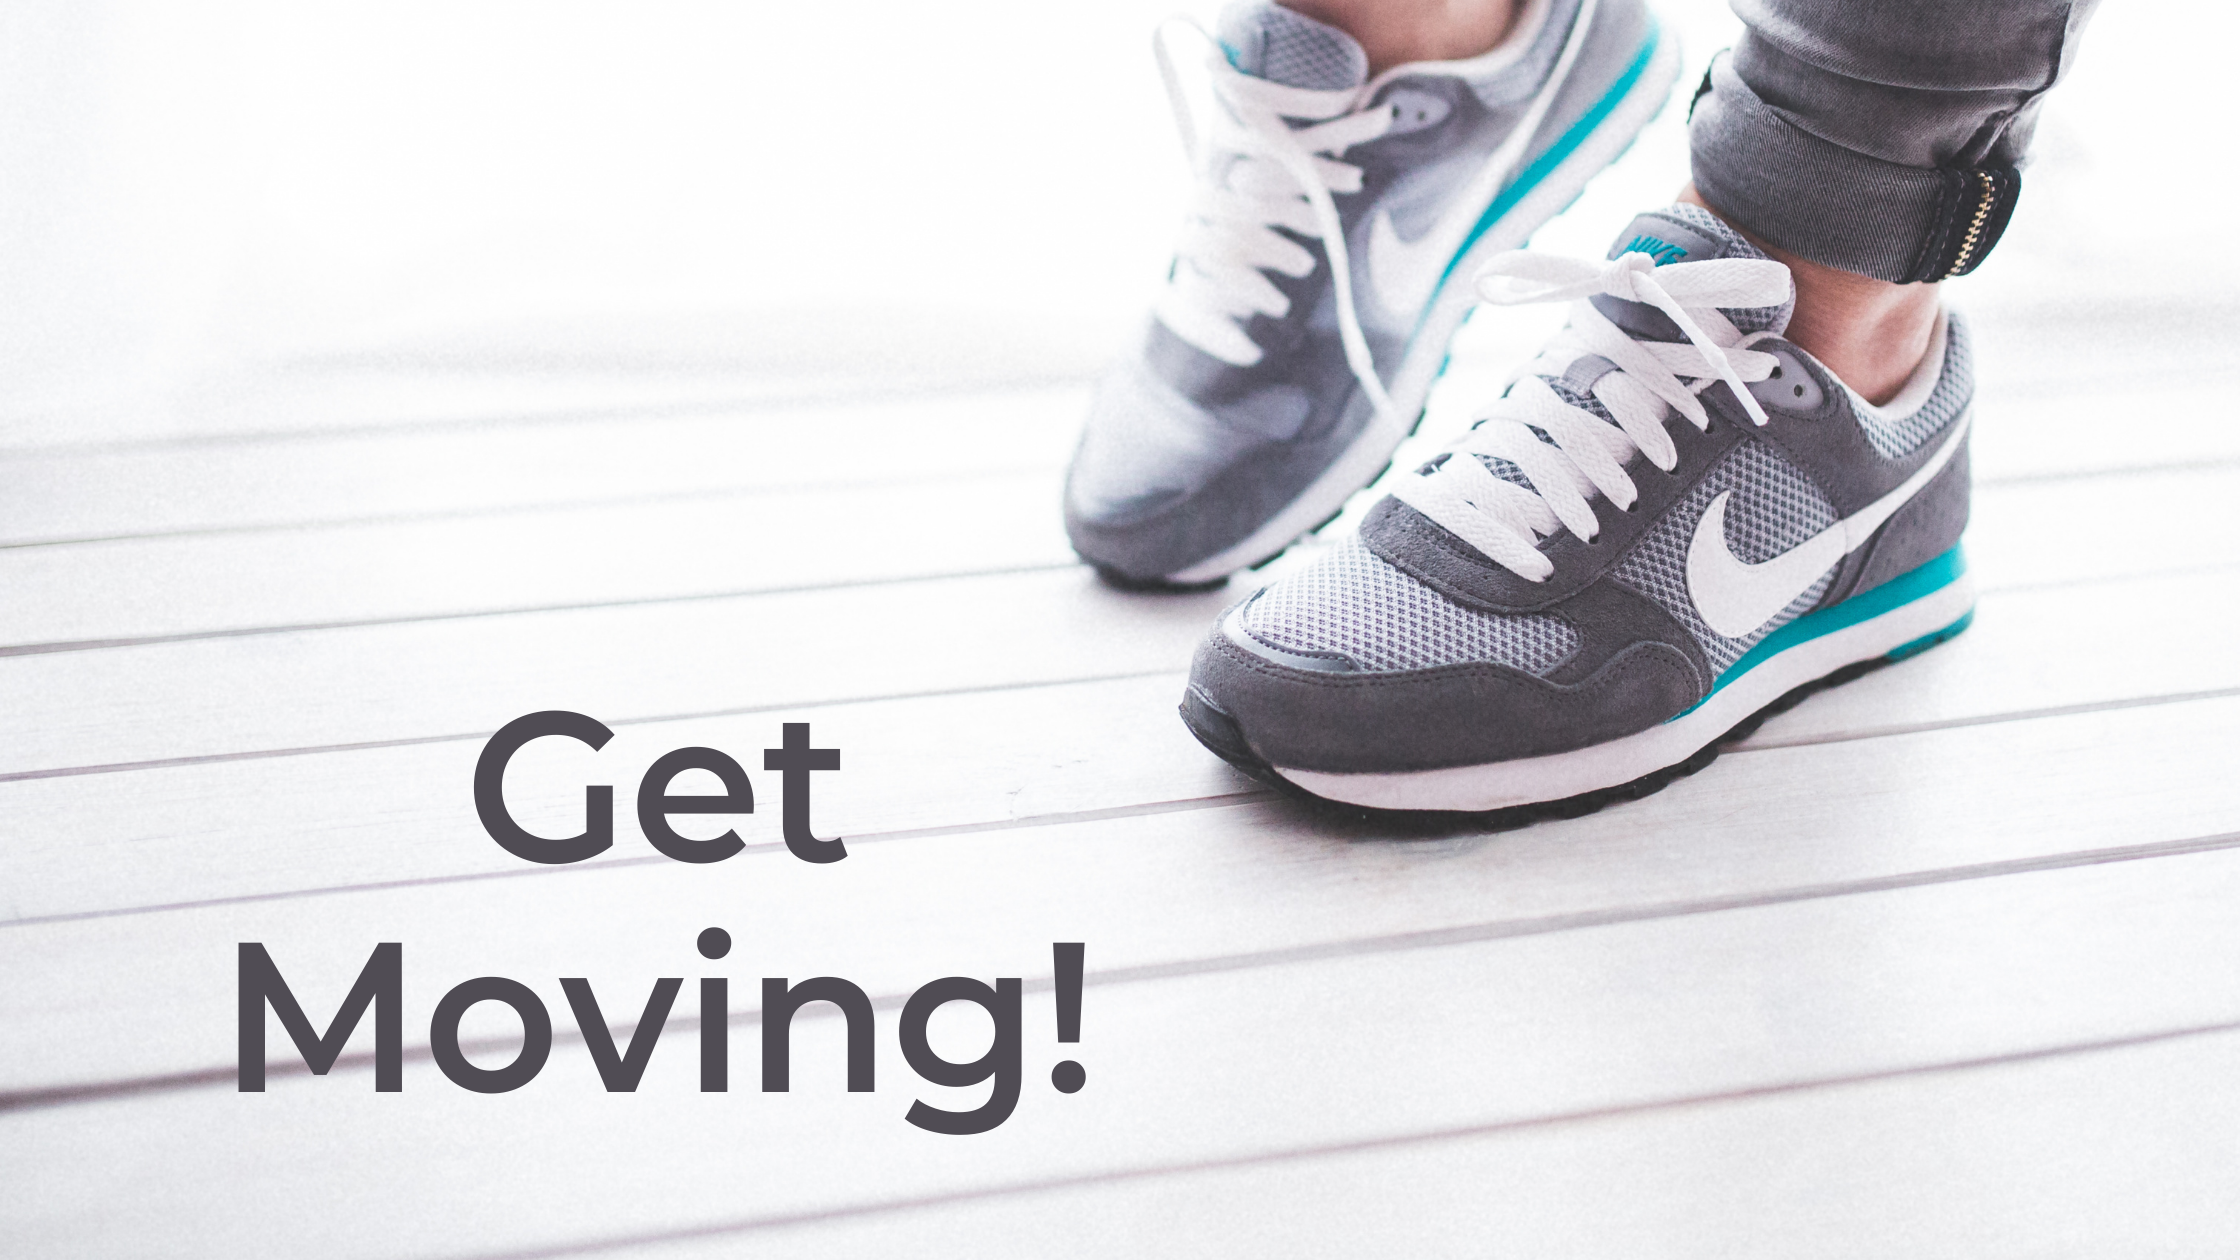 Exercise and Physical Therapy can help you stay happy during physical distancing